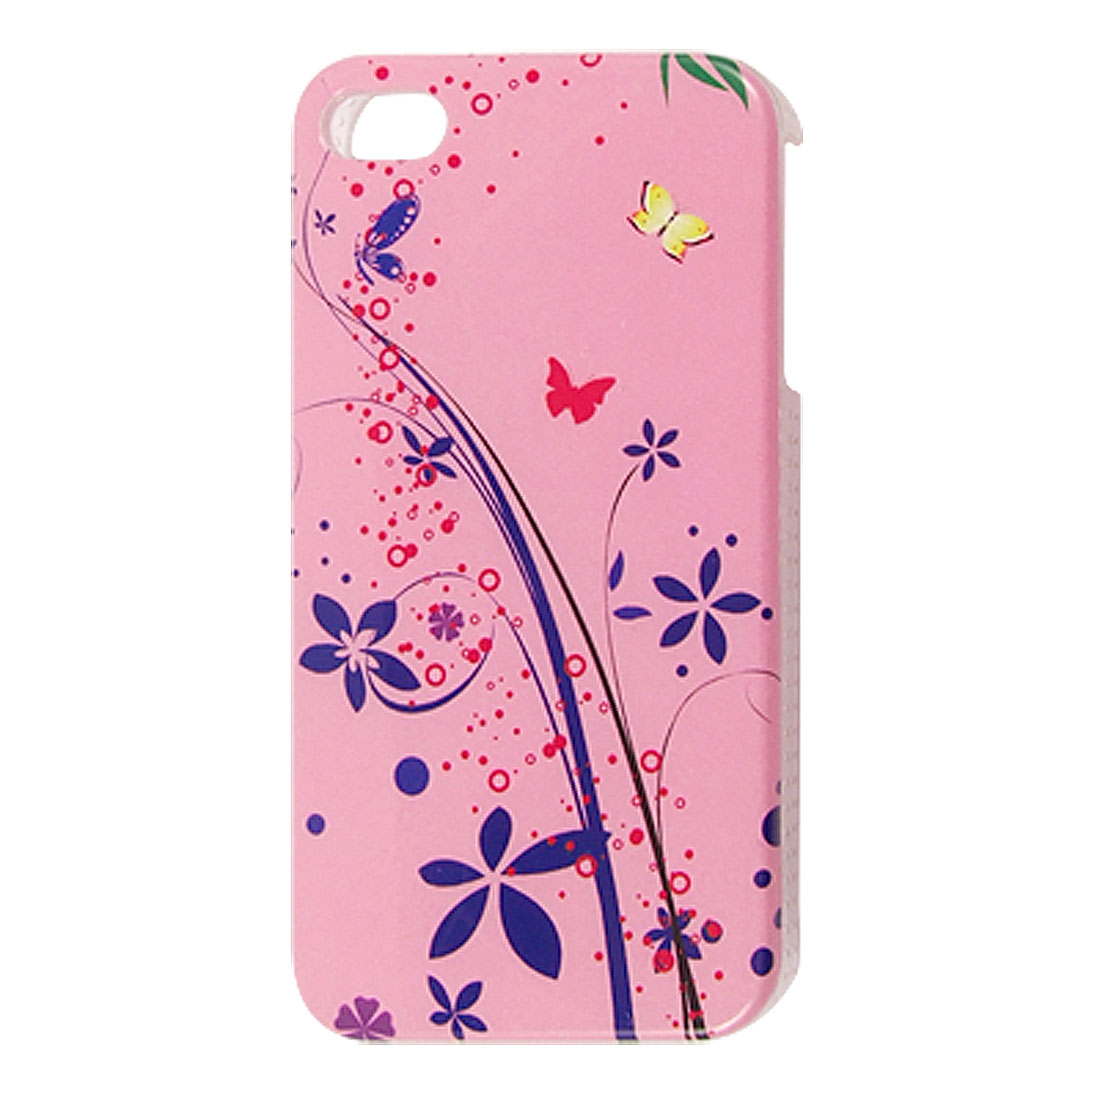 IMD Flower Pattern Pink Hard Plastic Shell Cover for iPhone 4 4G 4S